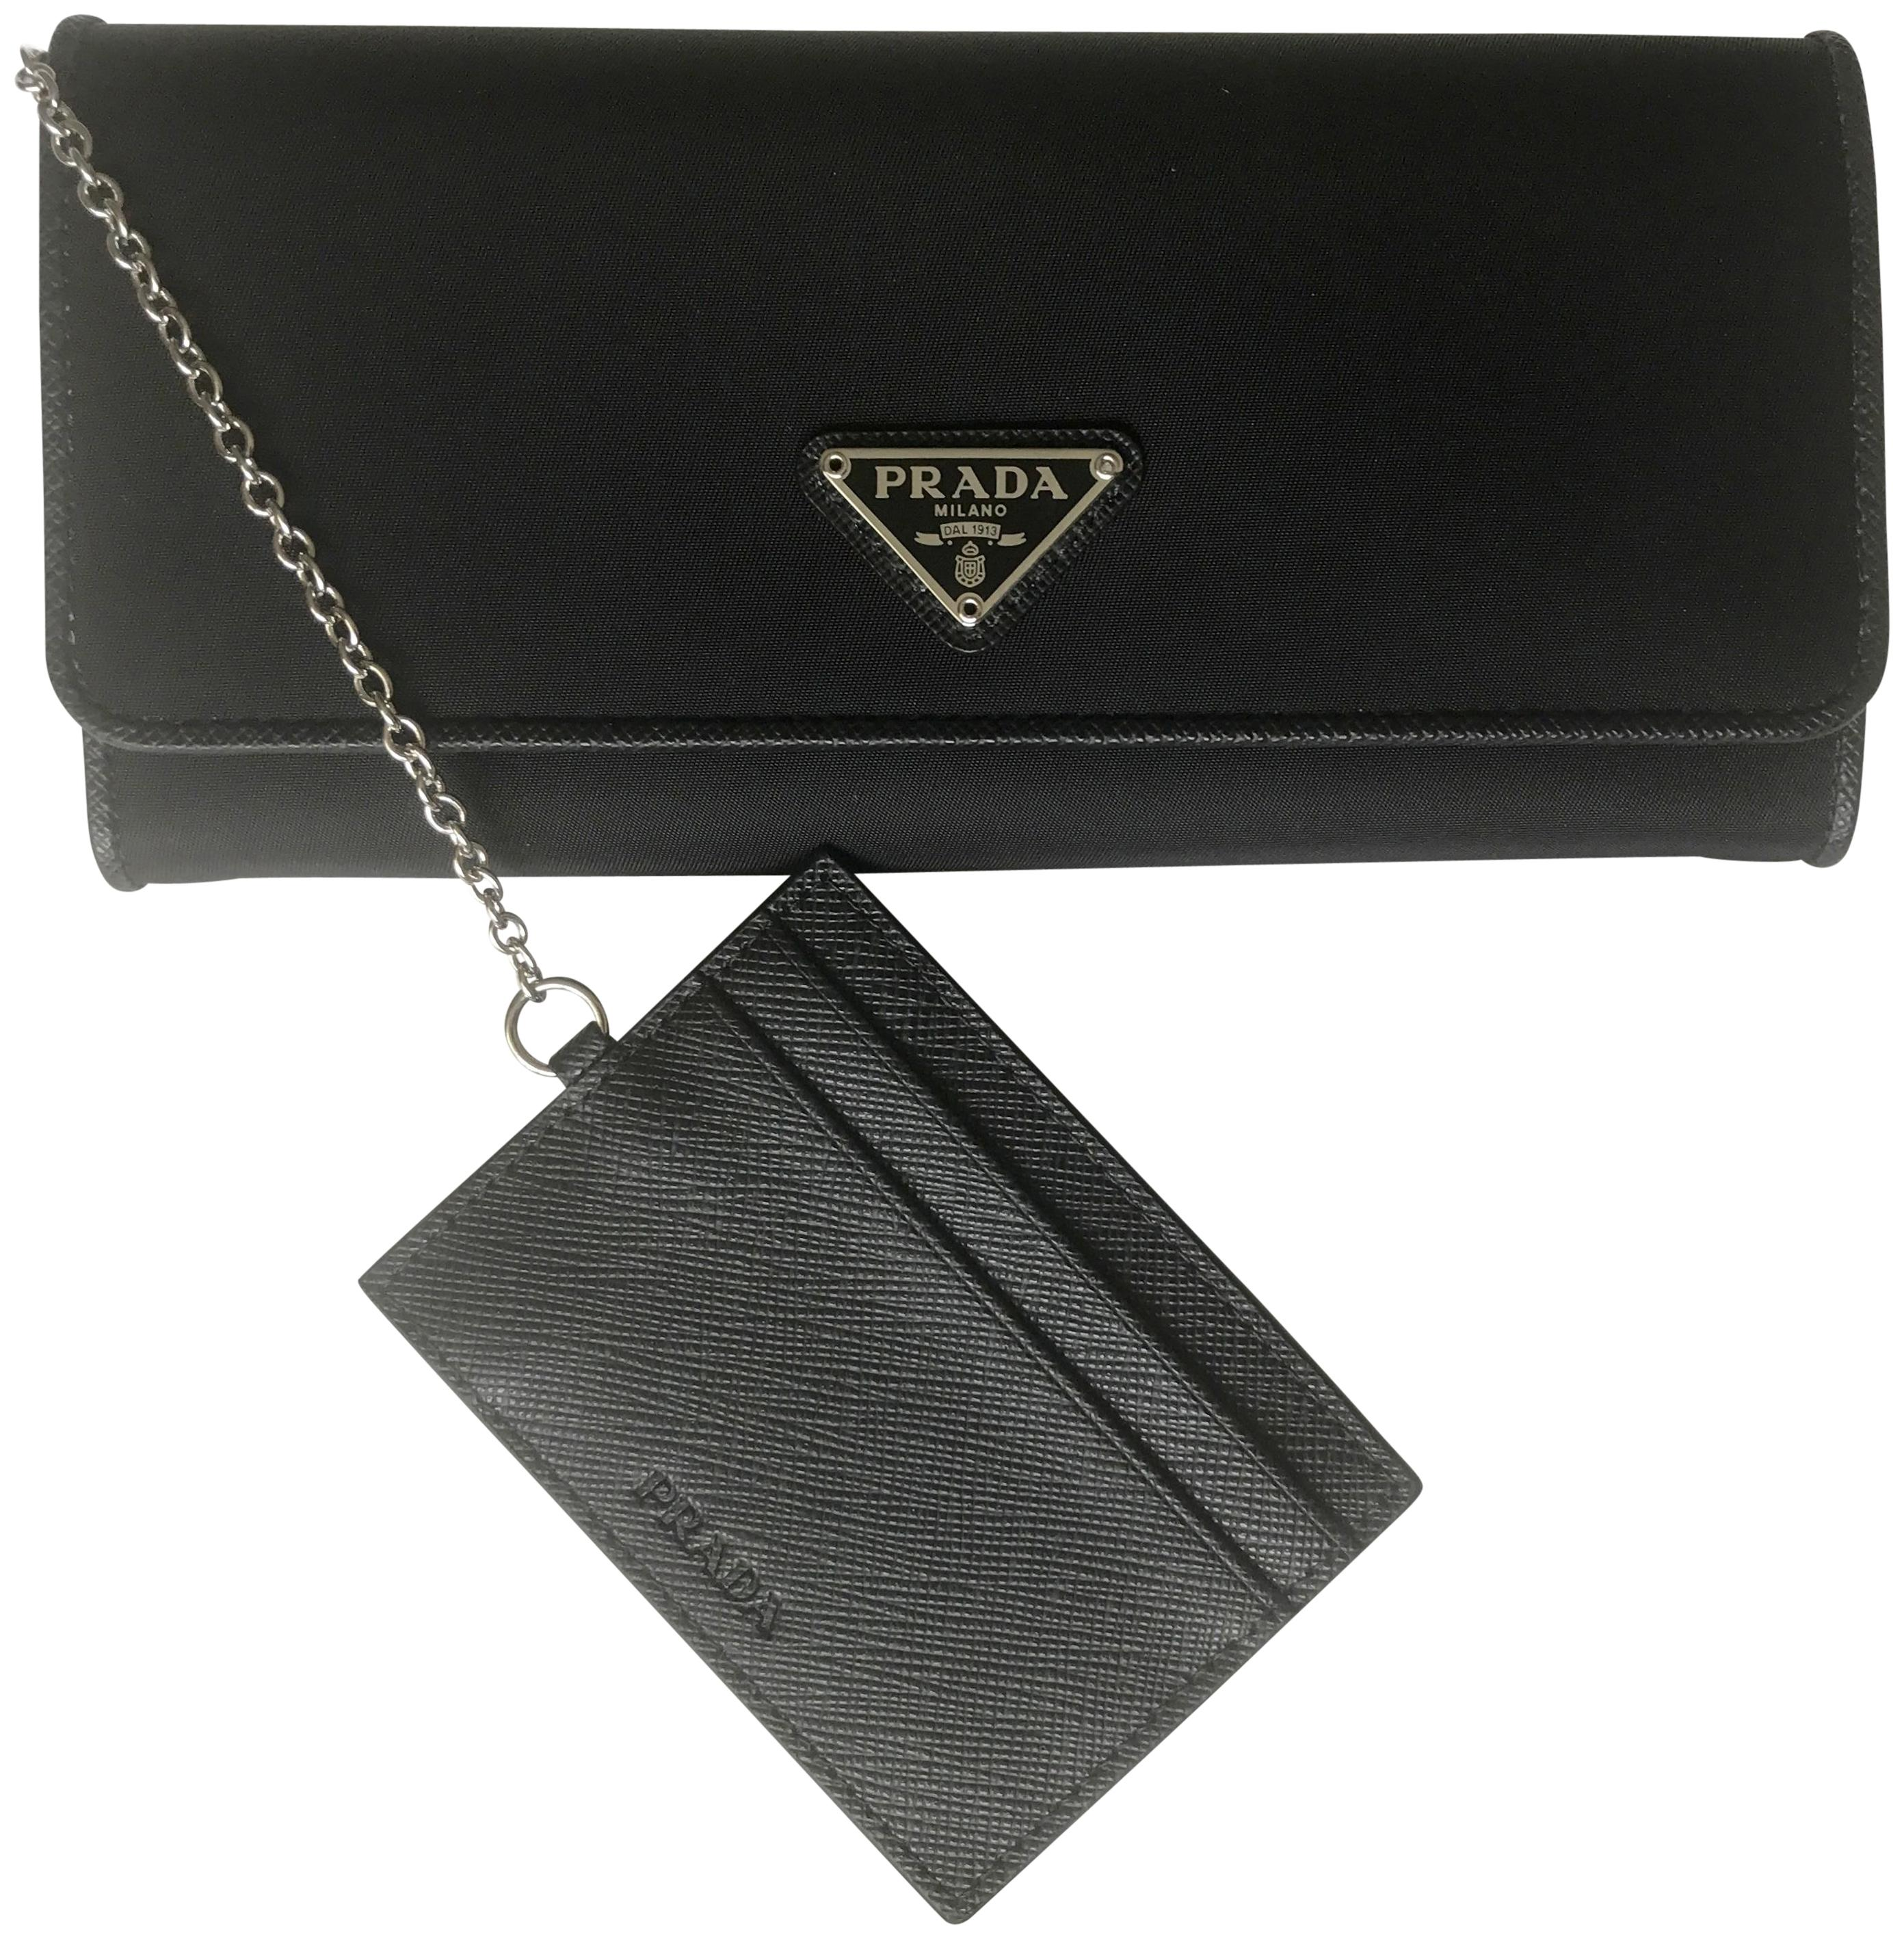 34aa6e84e0df authentic prada tessuto vitello wallet credit card holder new in box 1mh132  e727e 5faf6